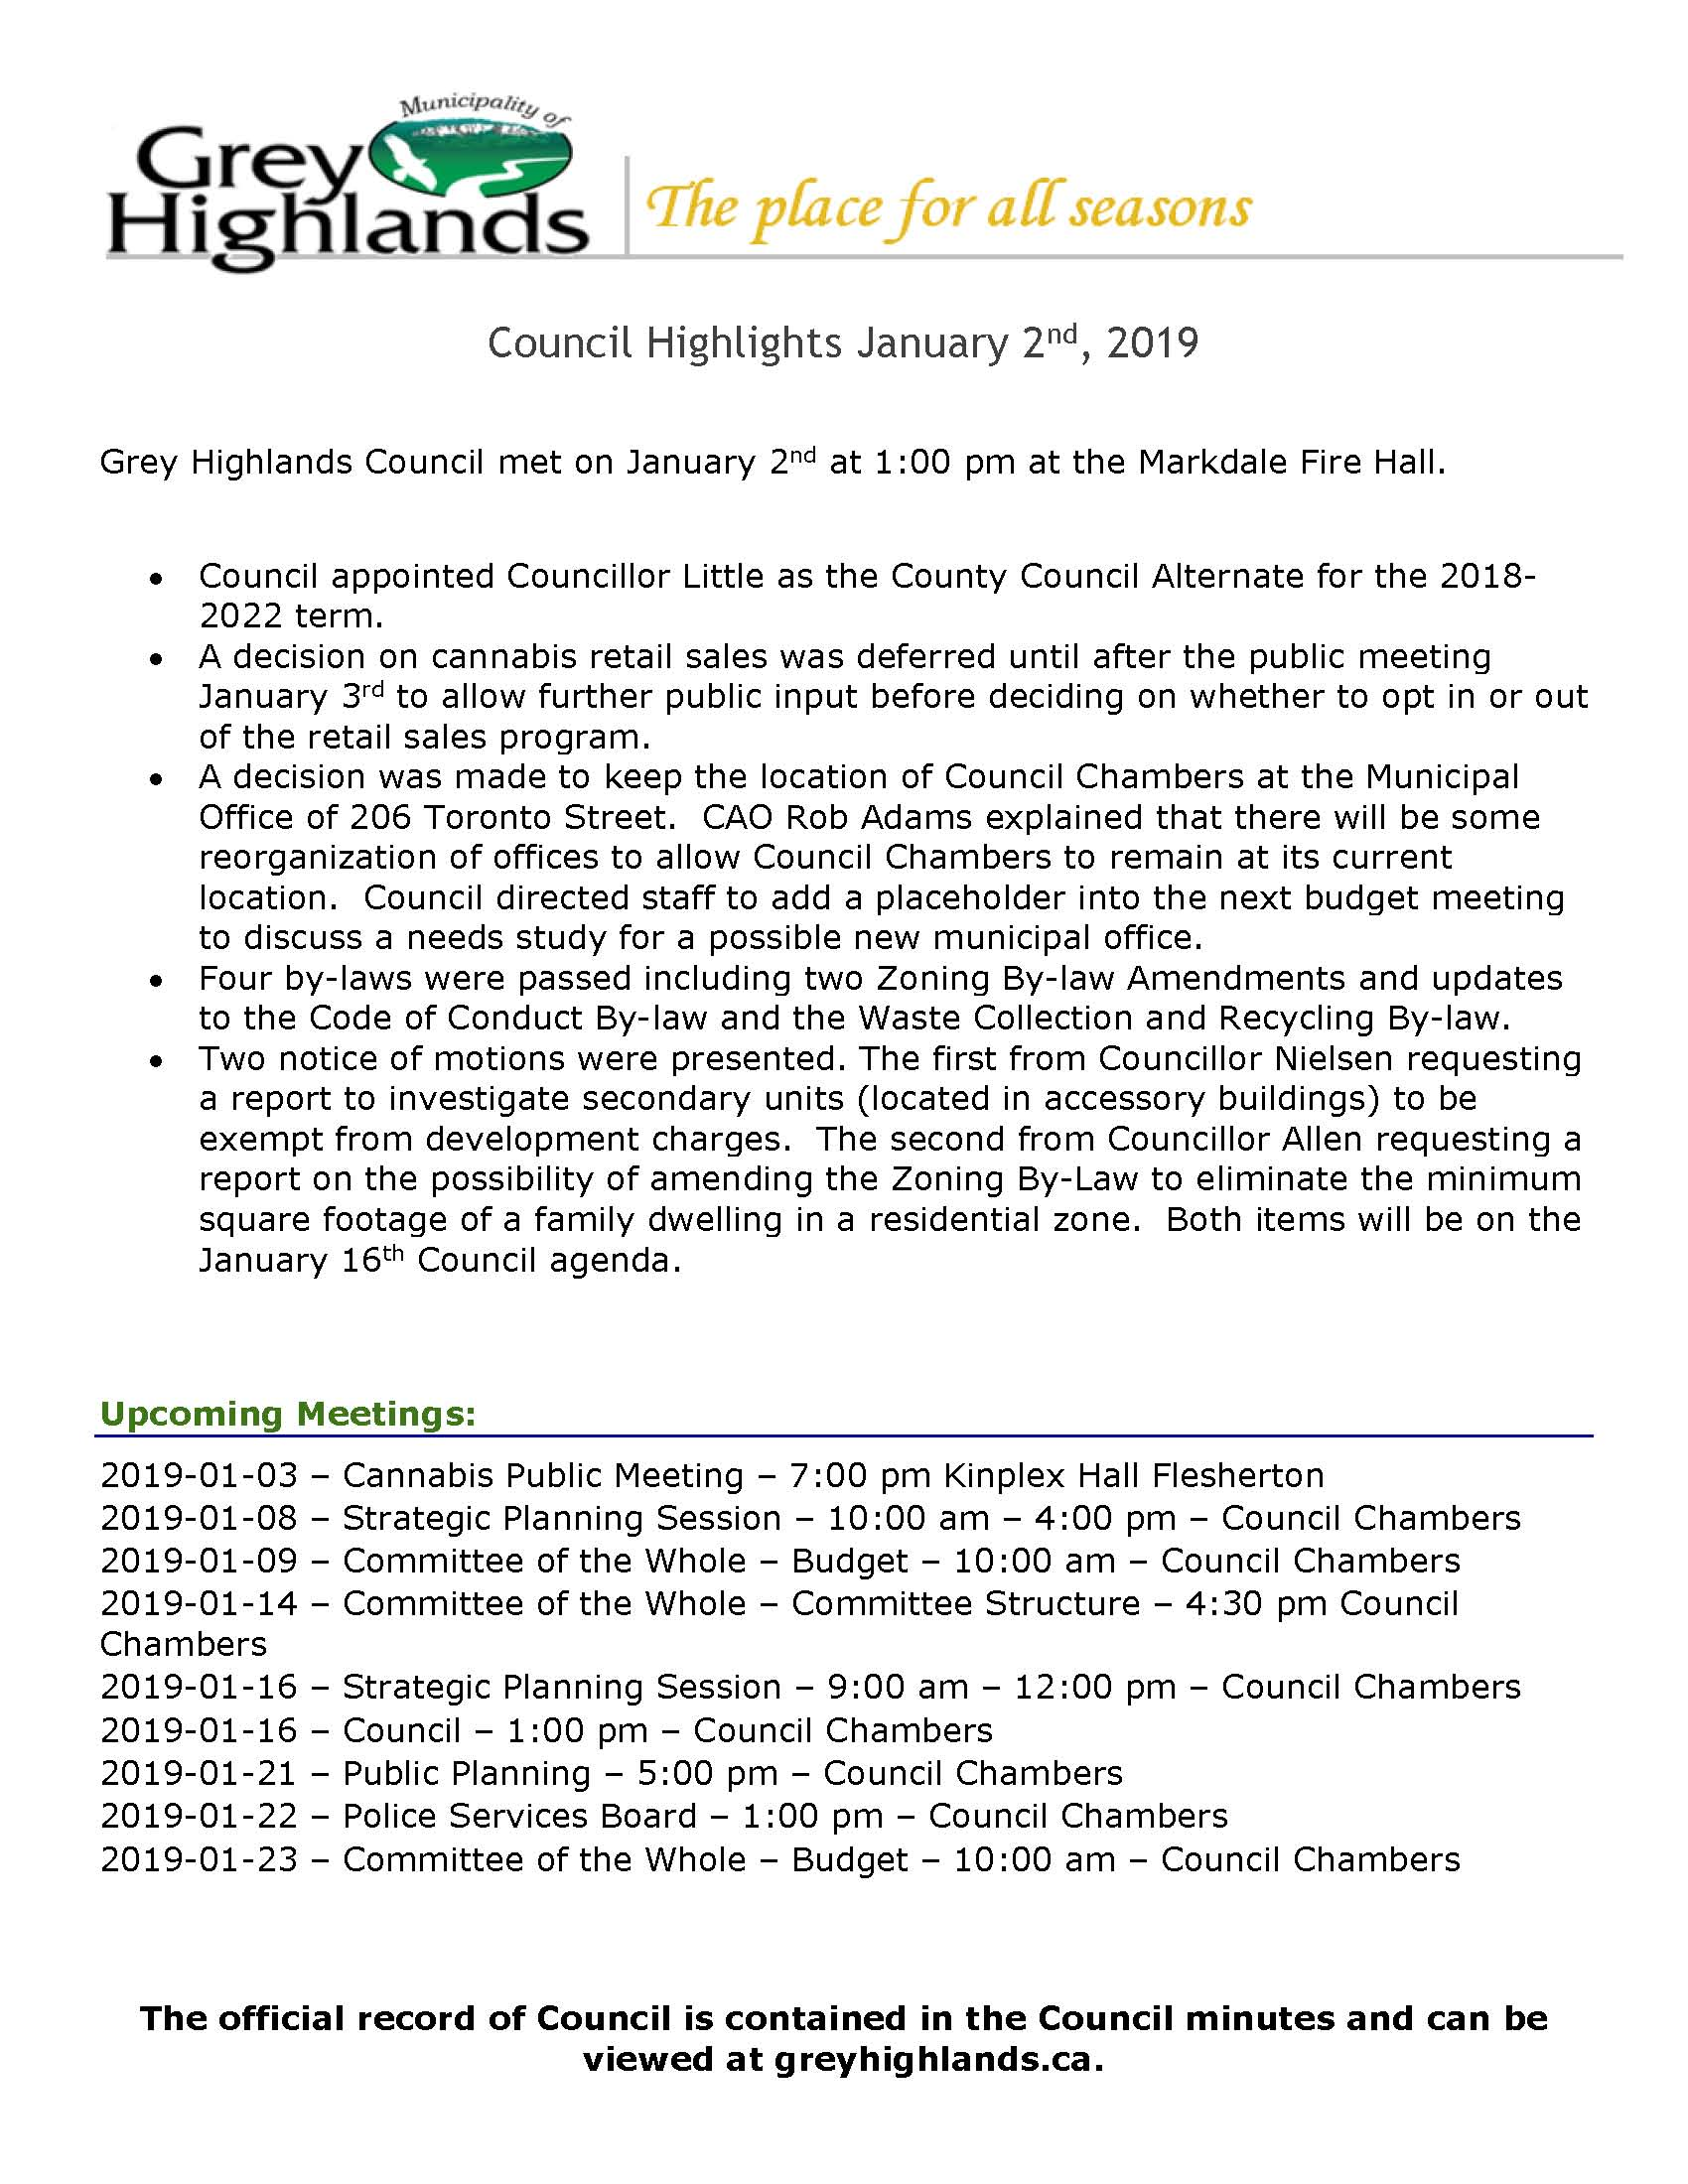 Council Highlights - January 2, 2019